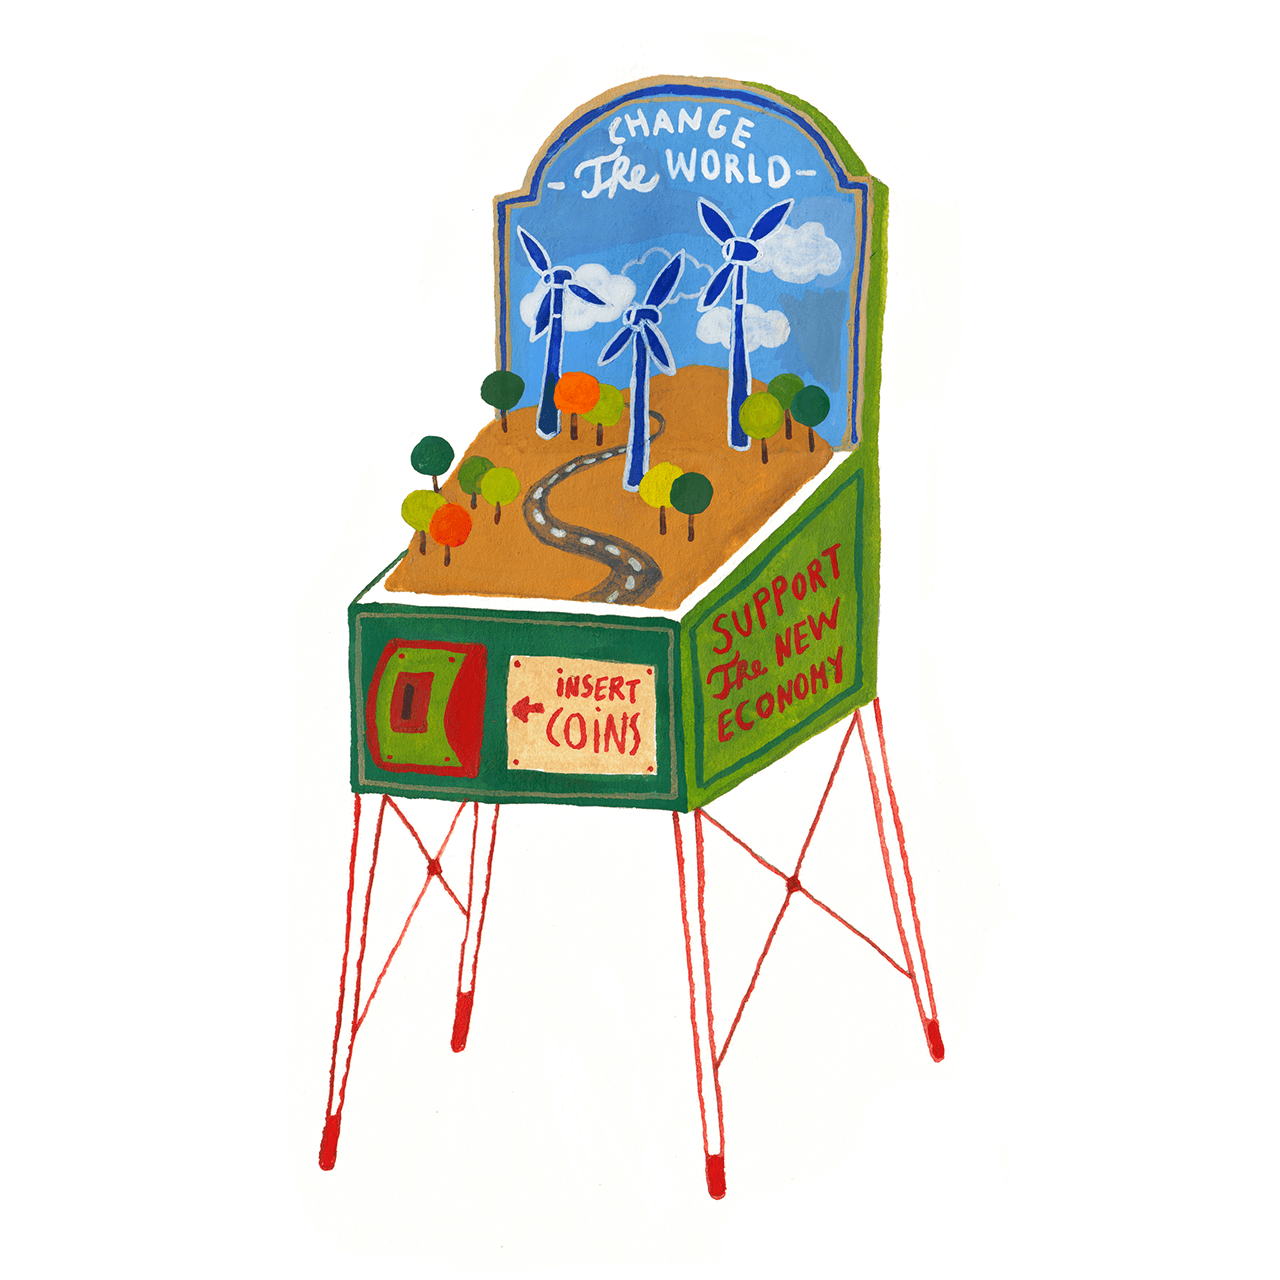 Editorial illustration of a pinball machine powering wind turbine